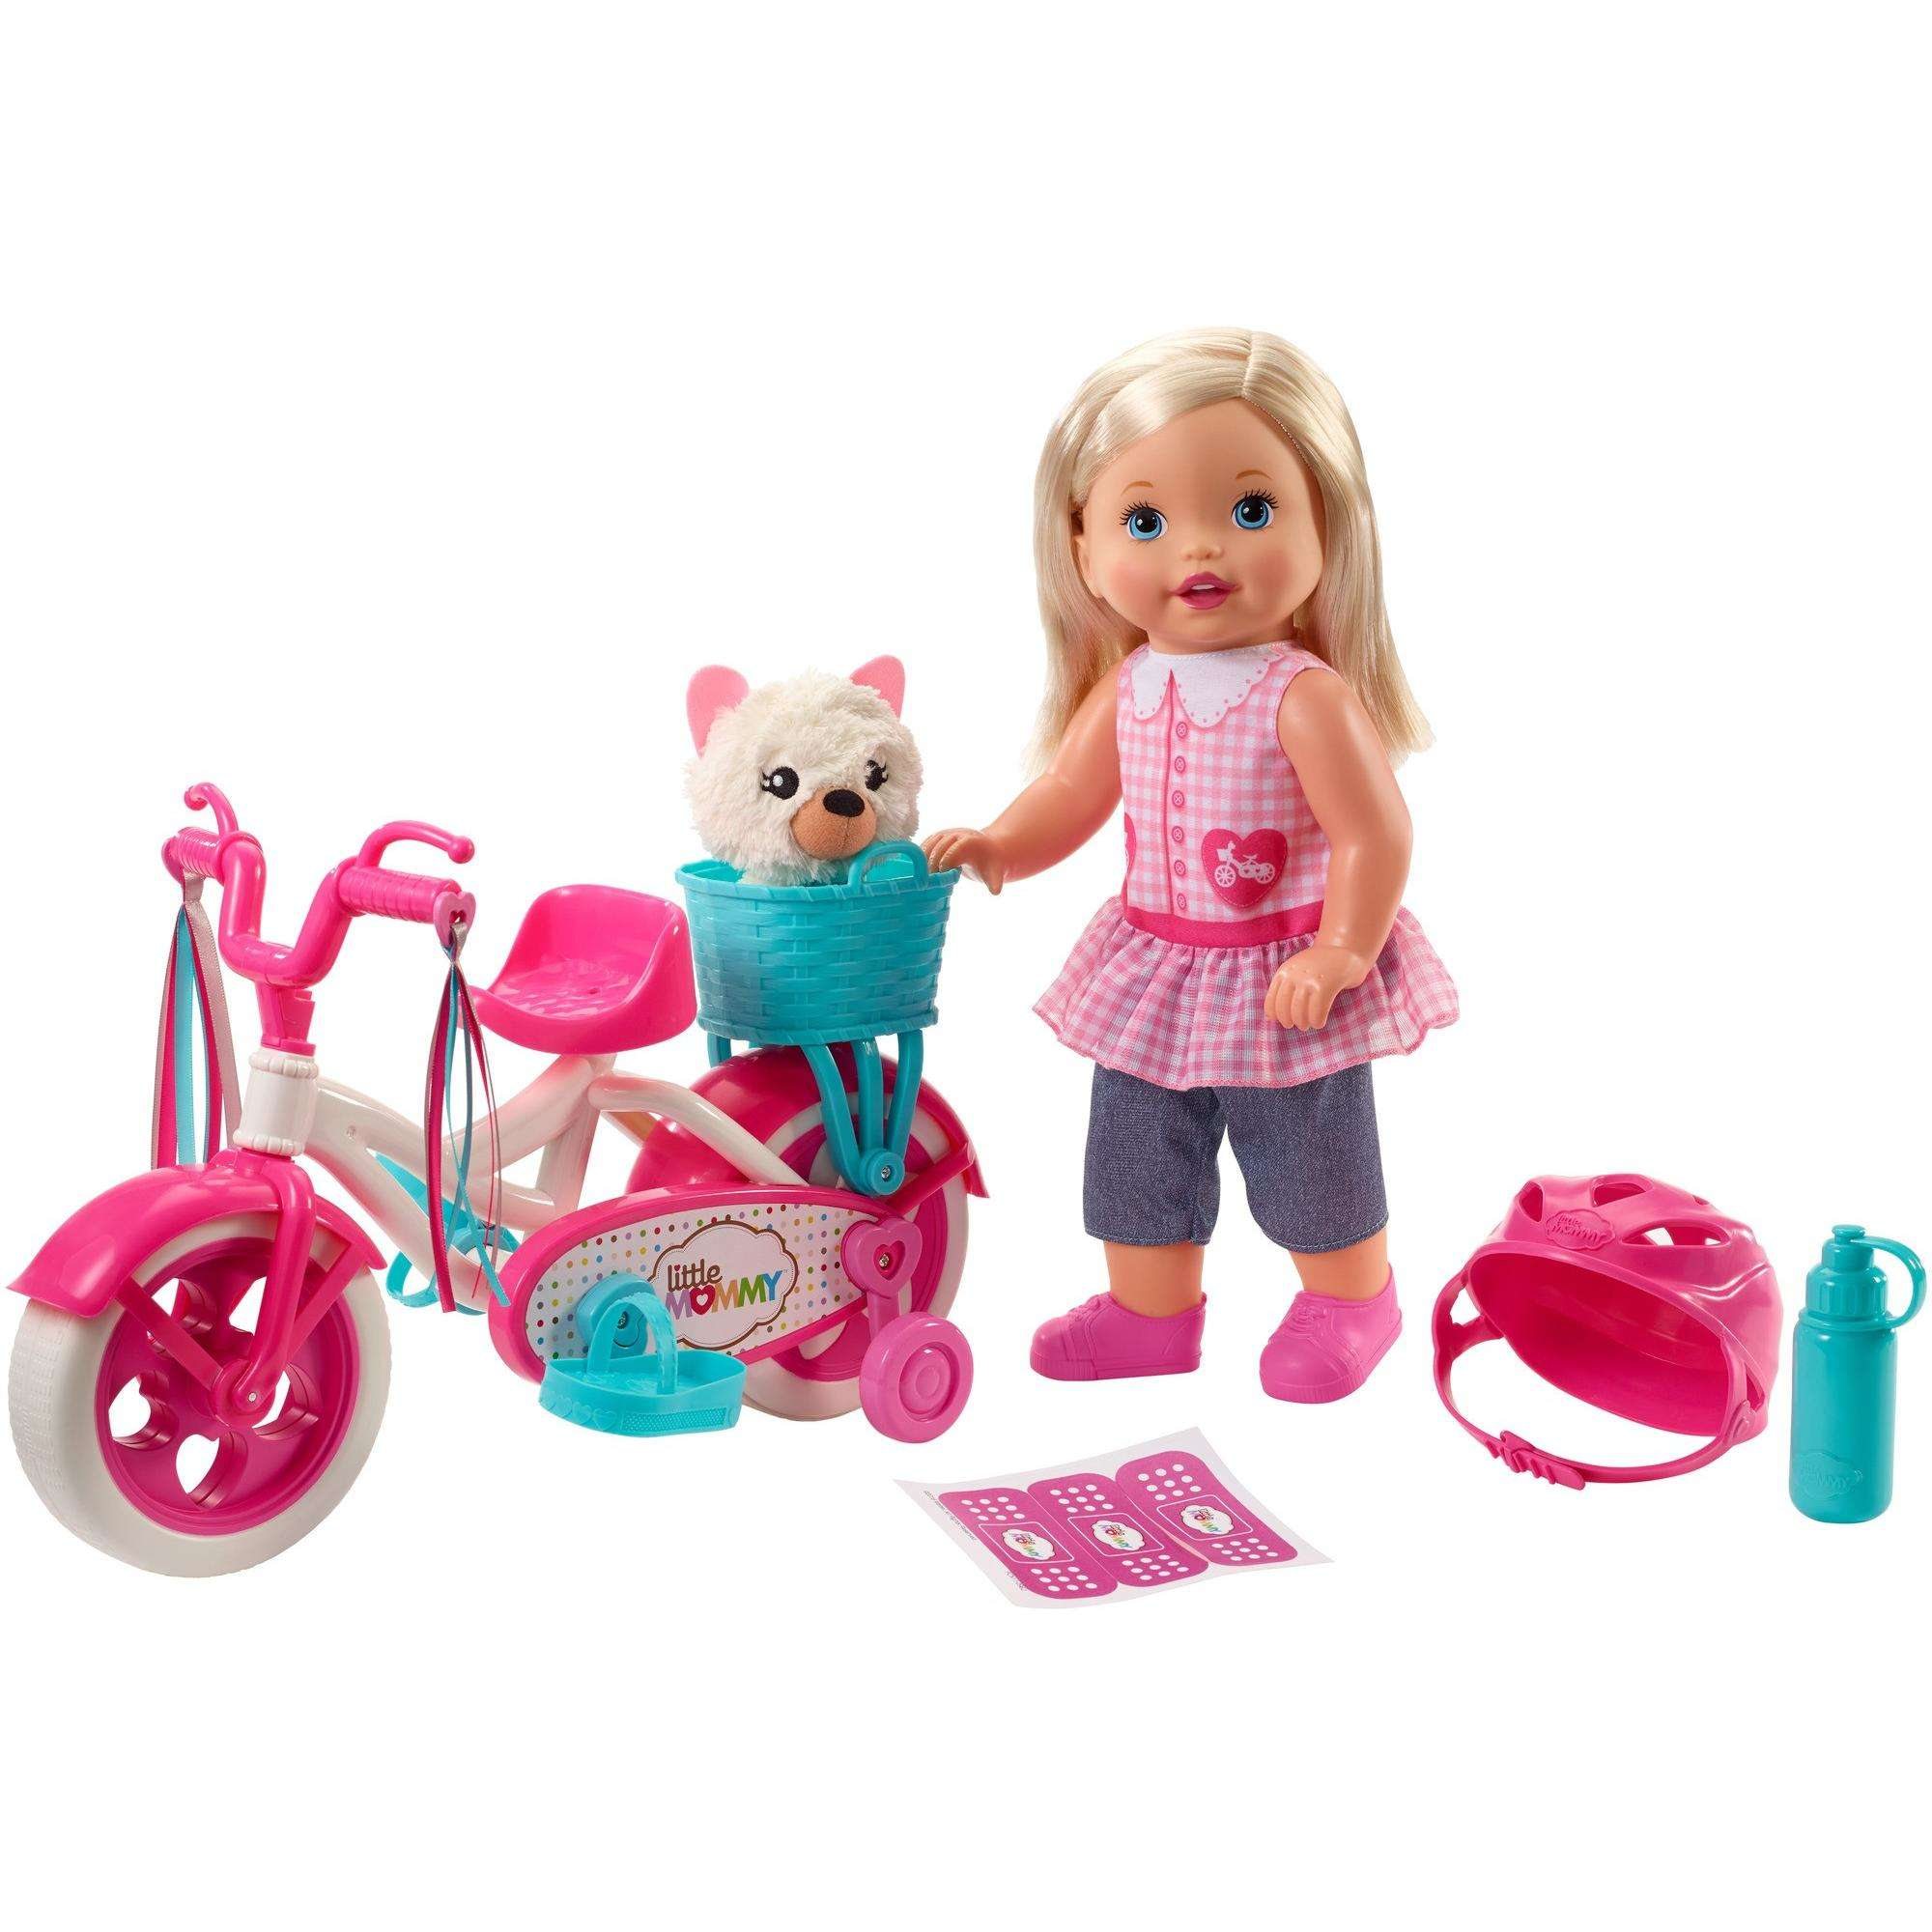 Little Mommy Learn To Ride Doll by Mattel